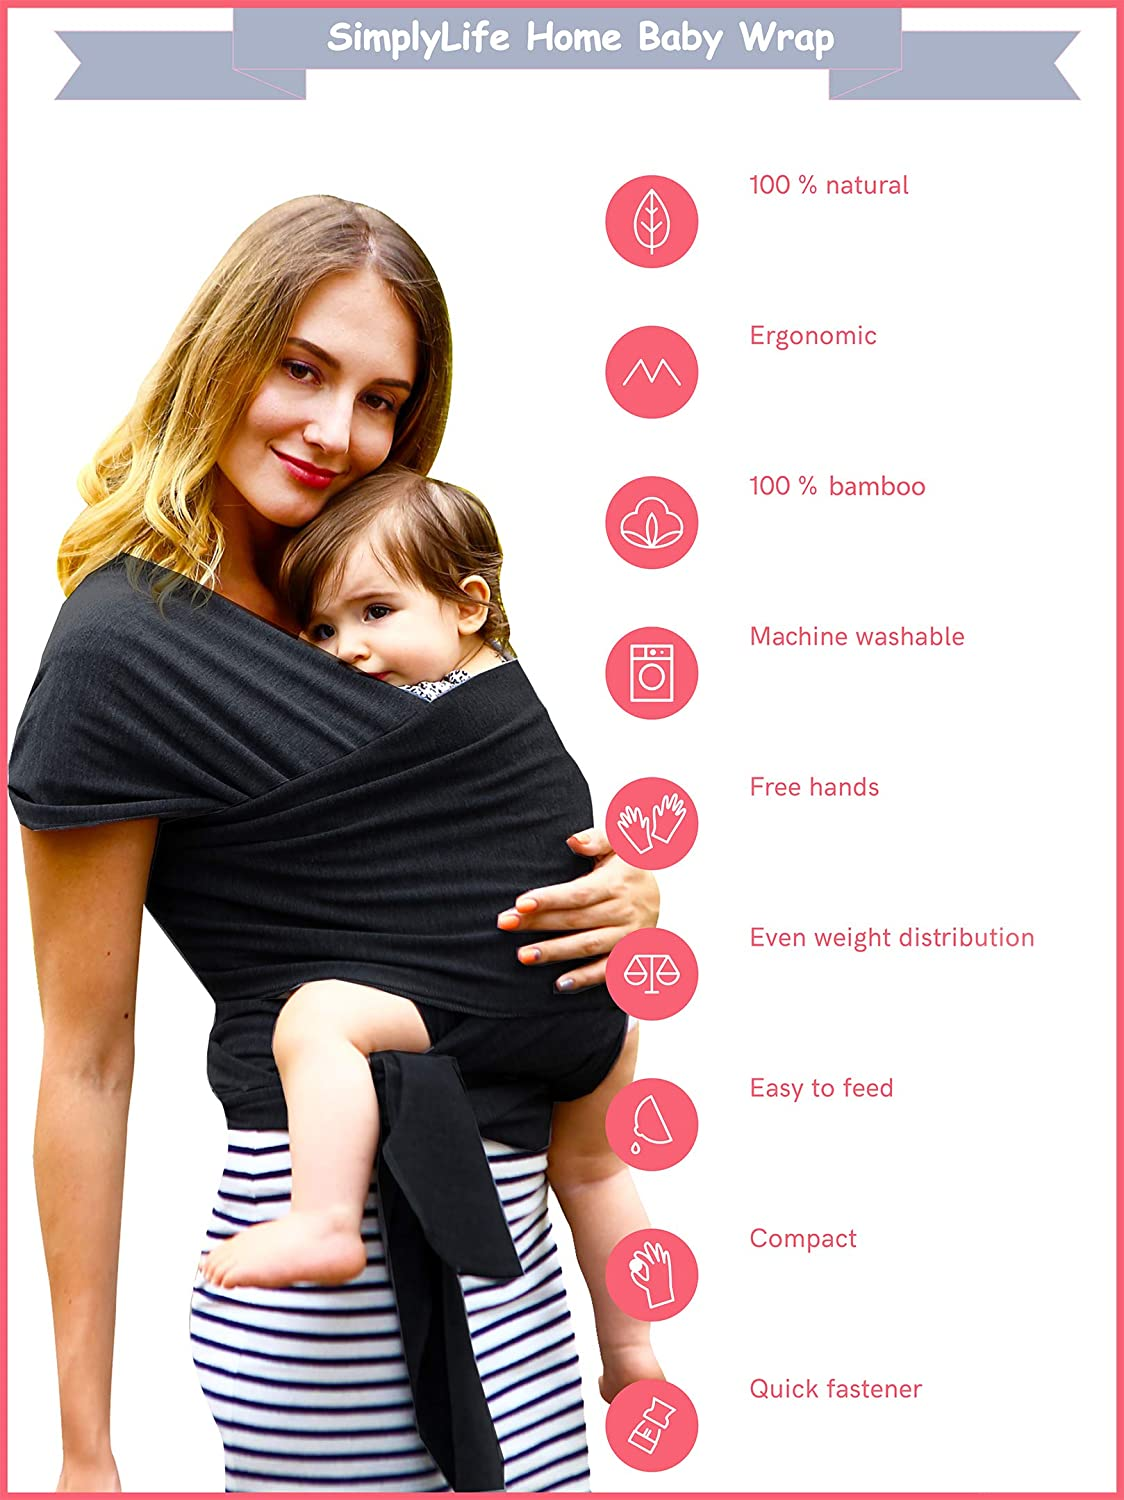 Toddlers Black New-Borns one Size Simple Being Baby wrap Sling Carrier Stretchy Bamboo Fabric Soft Breathable Lightweight for Infants ergonomically Designed Hypoallergenic